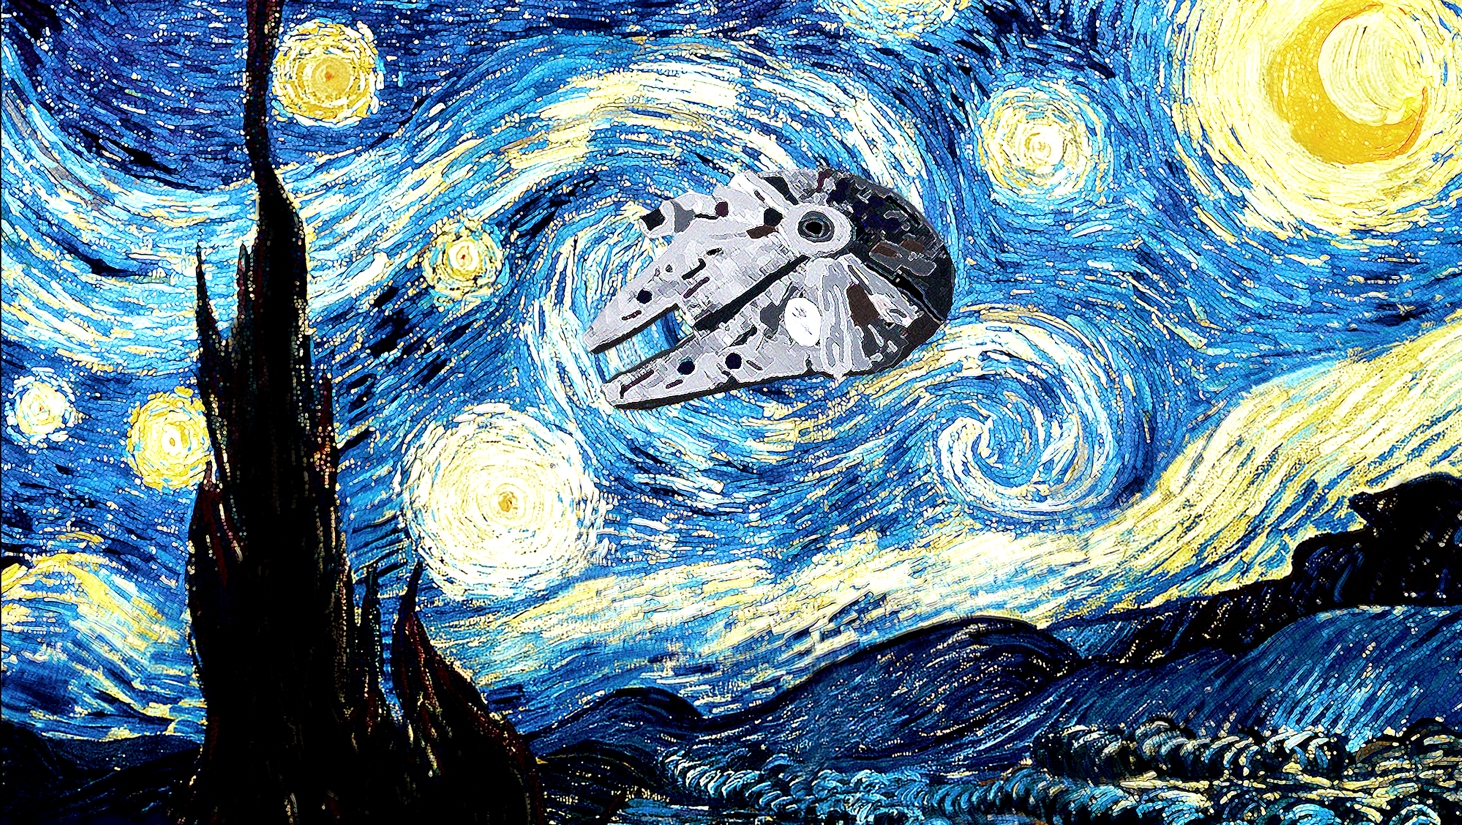 Starry_Night_with_Millennium_Falcon_by_Rabittooth